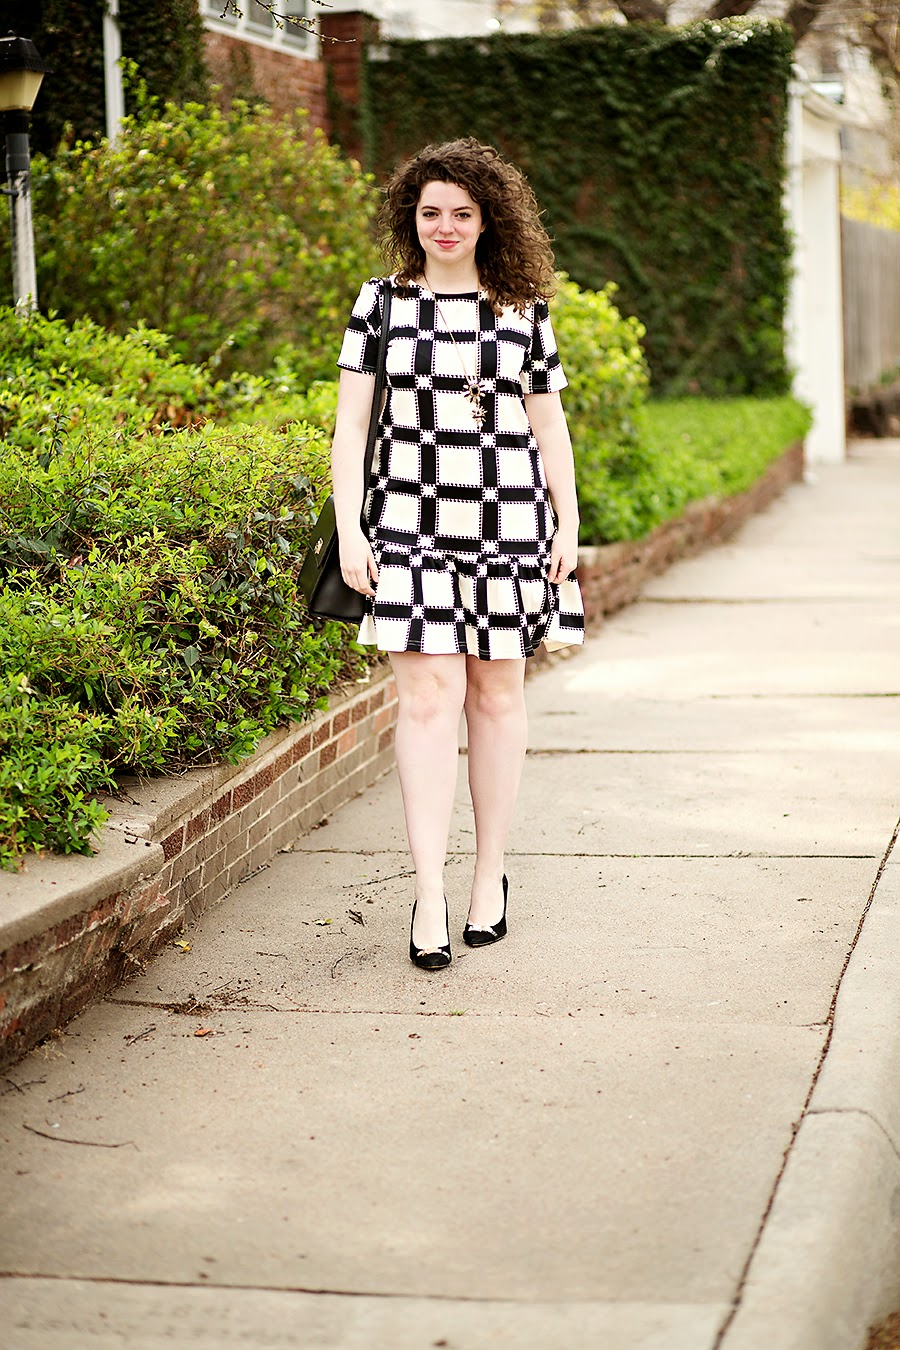 Asos black and white grid swing dress. The perfect outfit for business casual when you want to look professional but still maintain your youth.